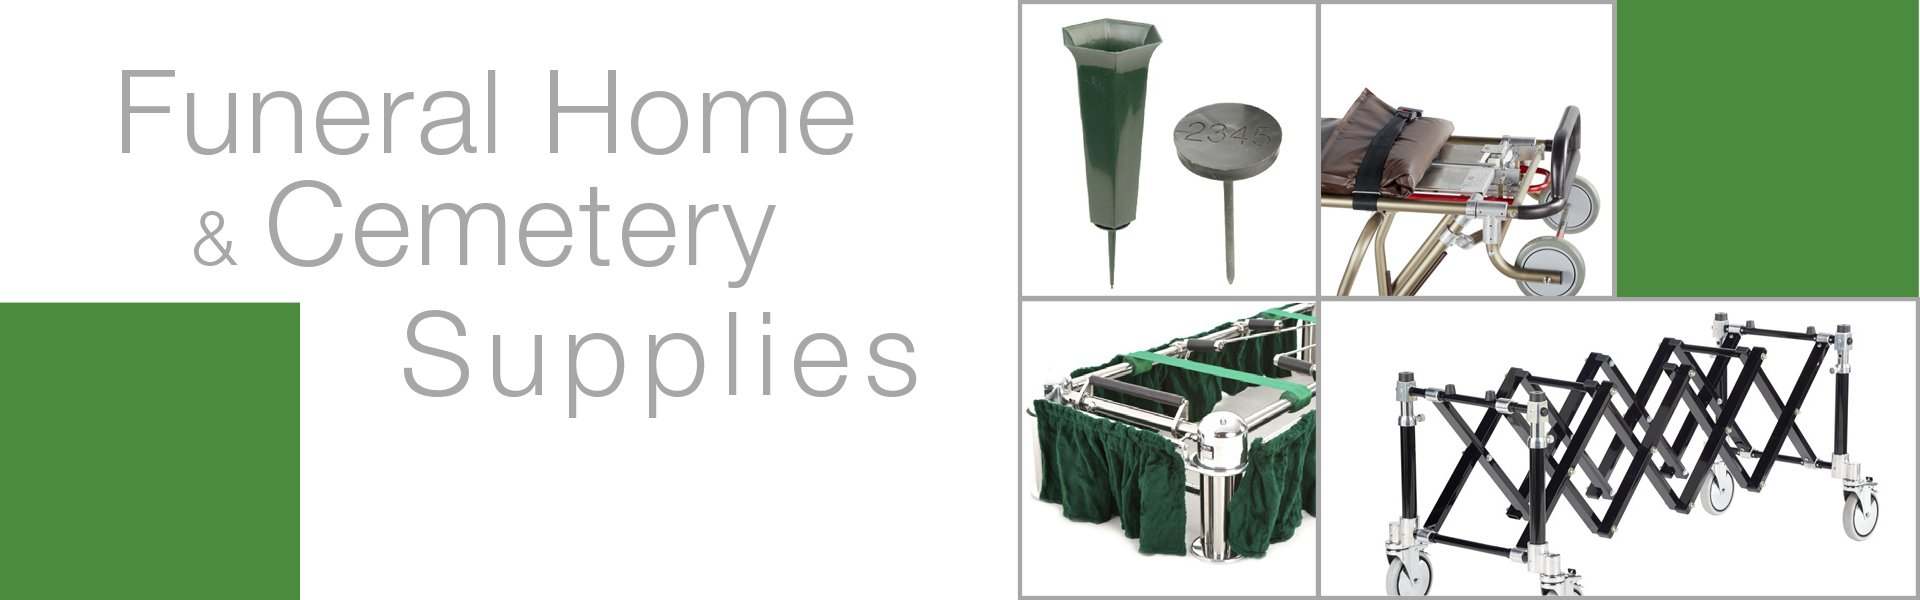 Manchester Supply. Funeral Supplies   Equipment   Manchester Supply